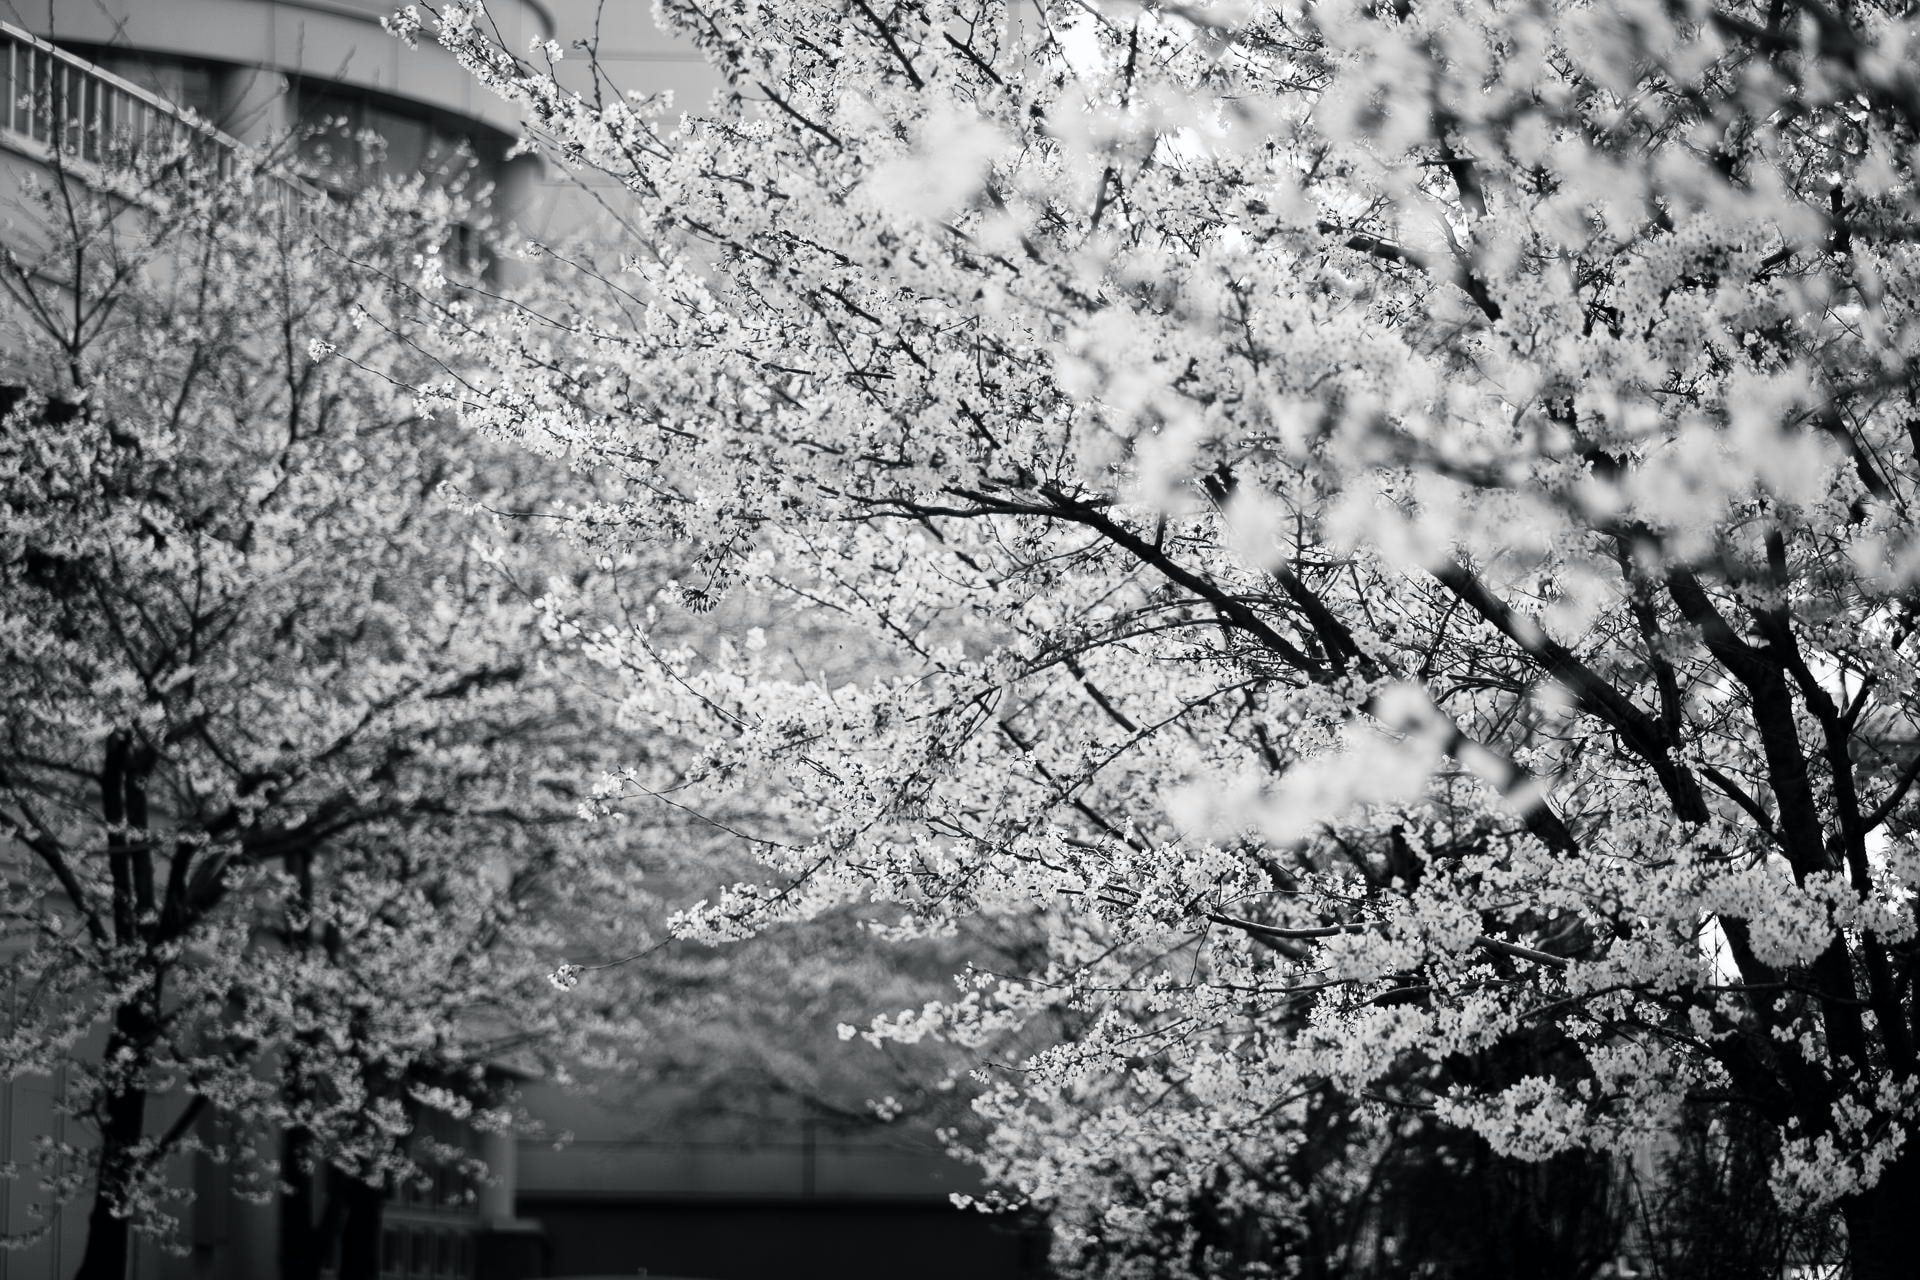 grayscale photo of cherry blossom